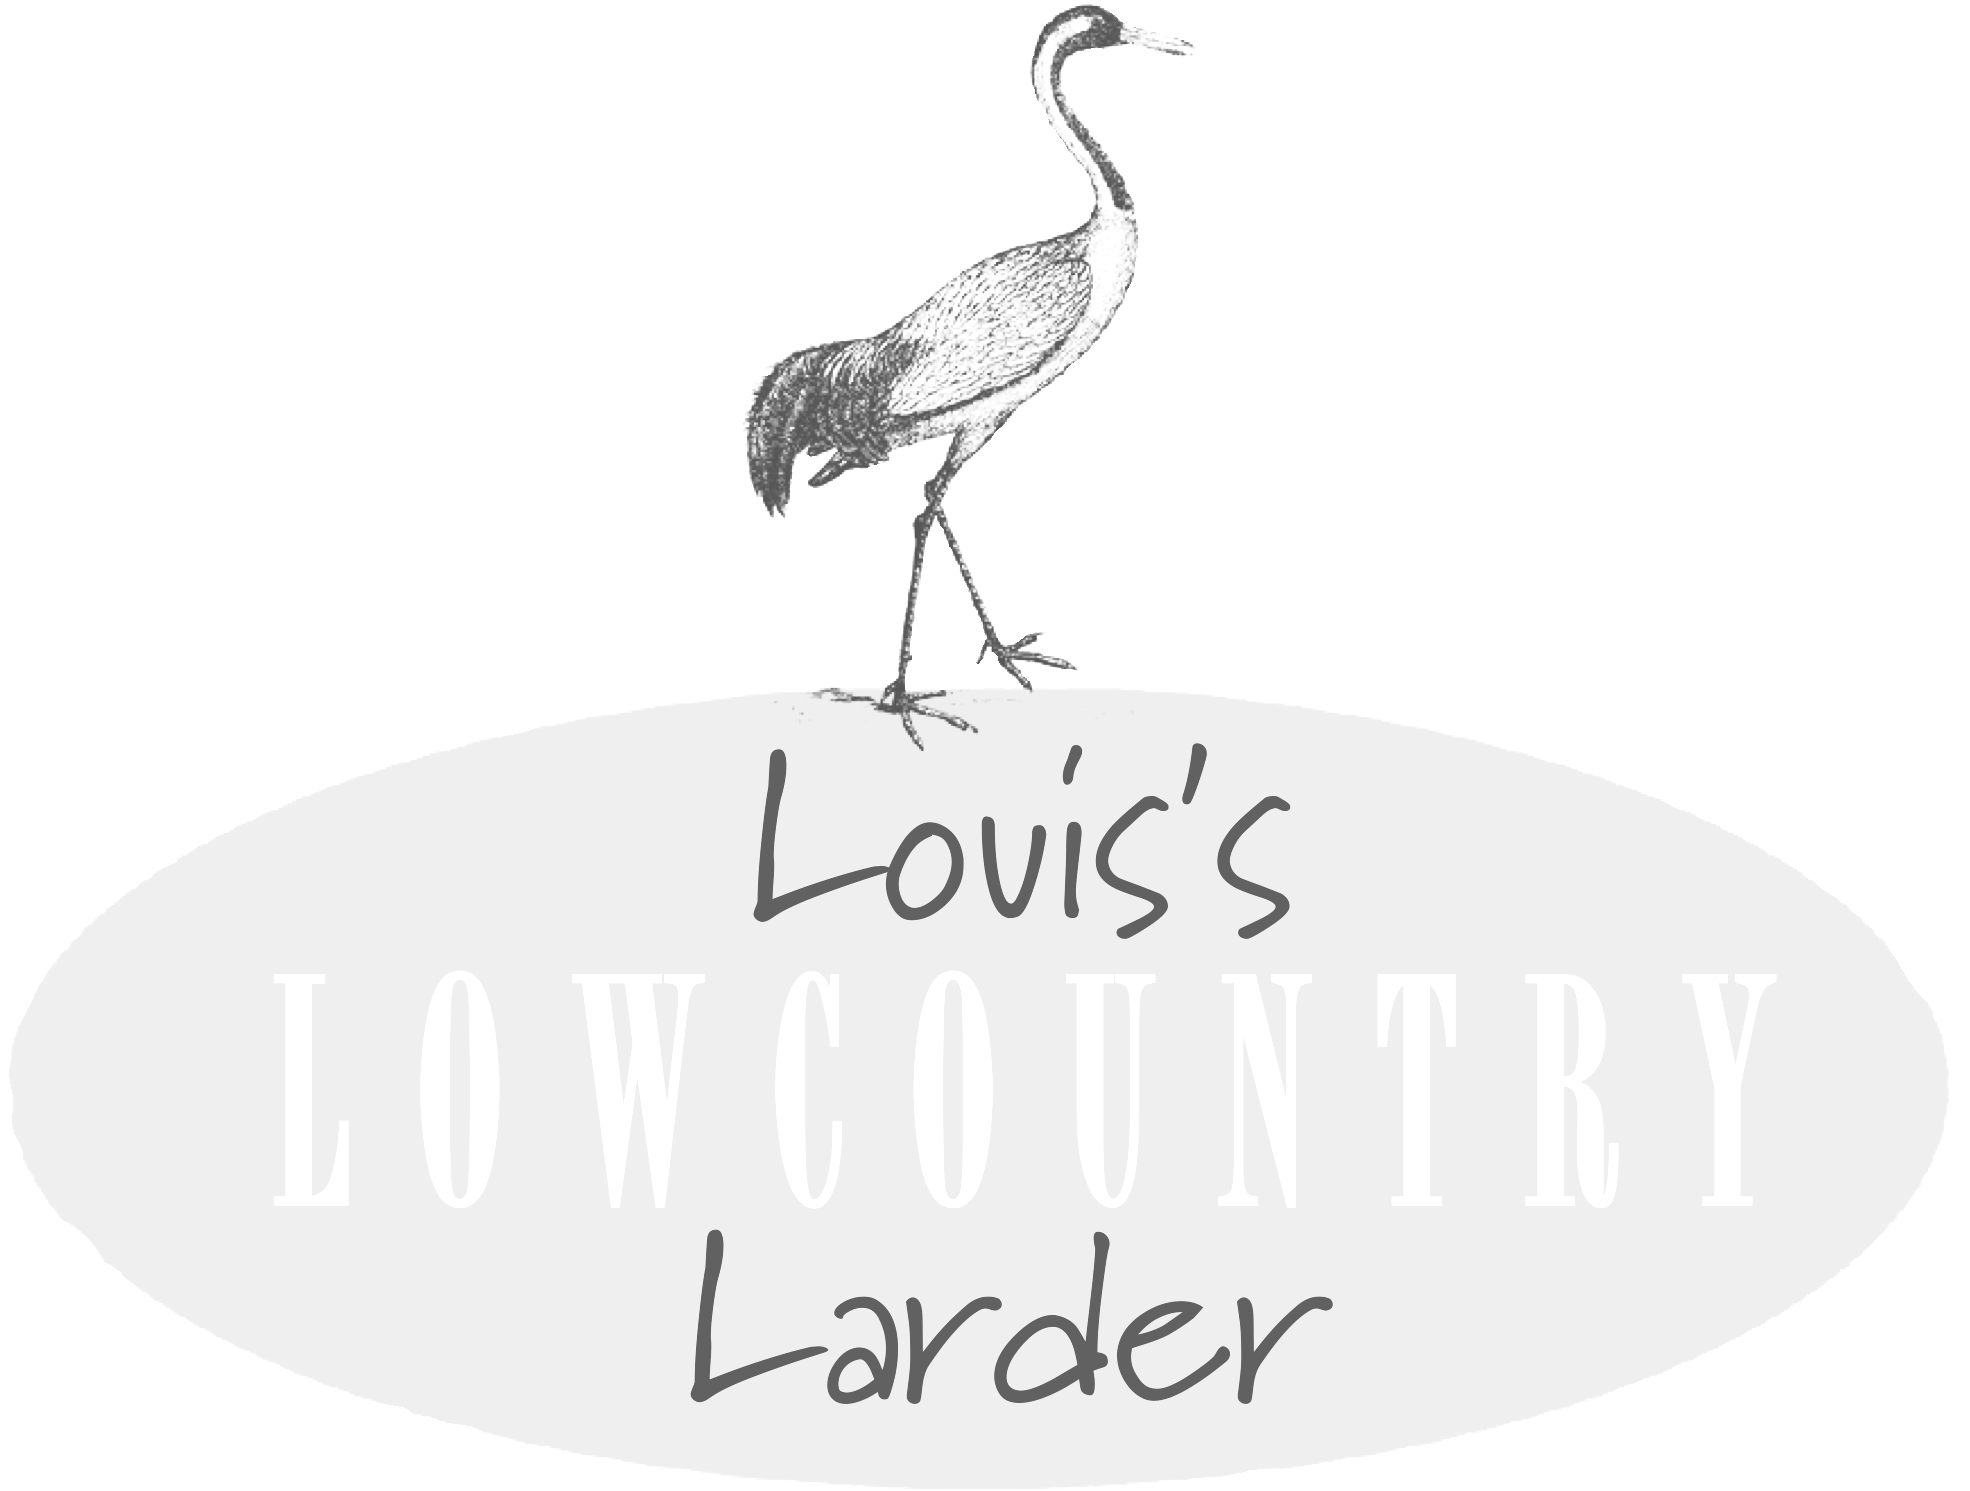 Louis's Low Country Larder